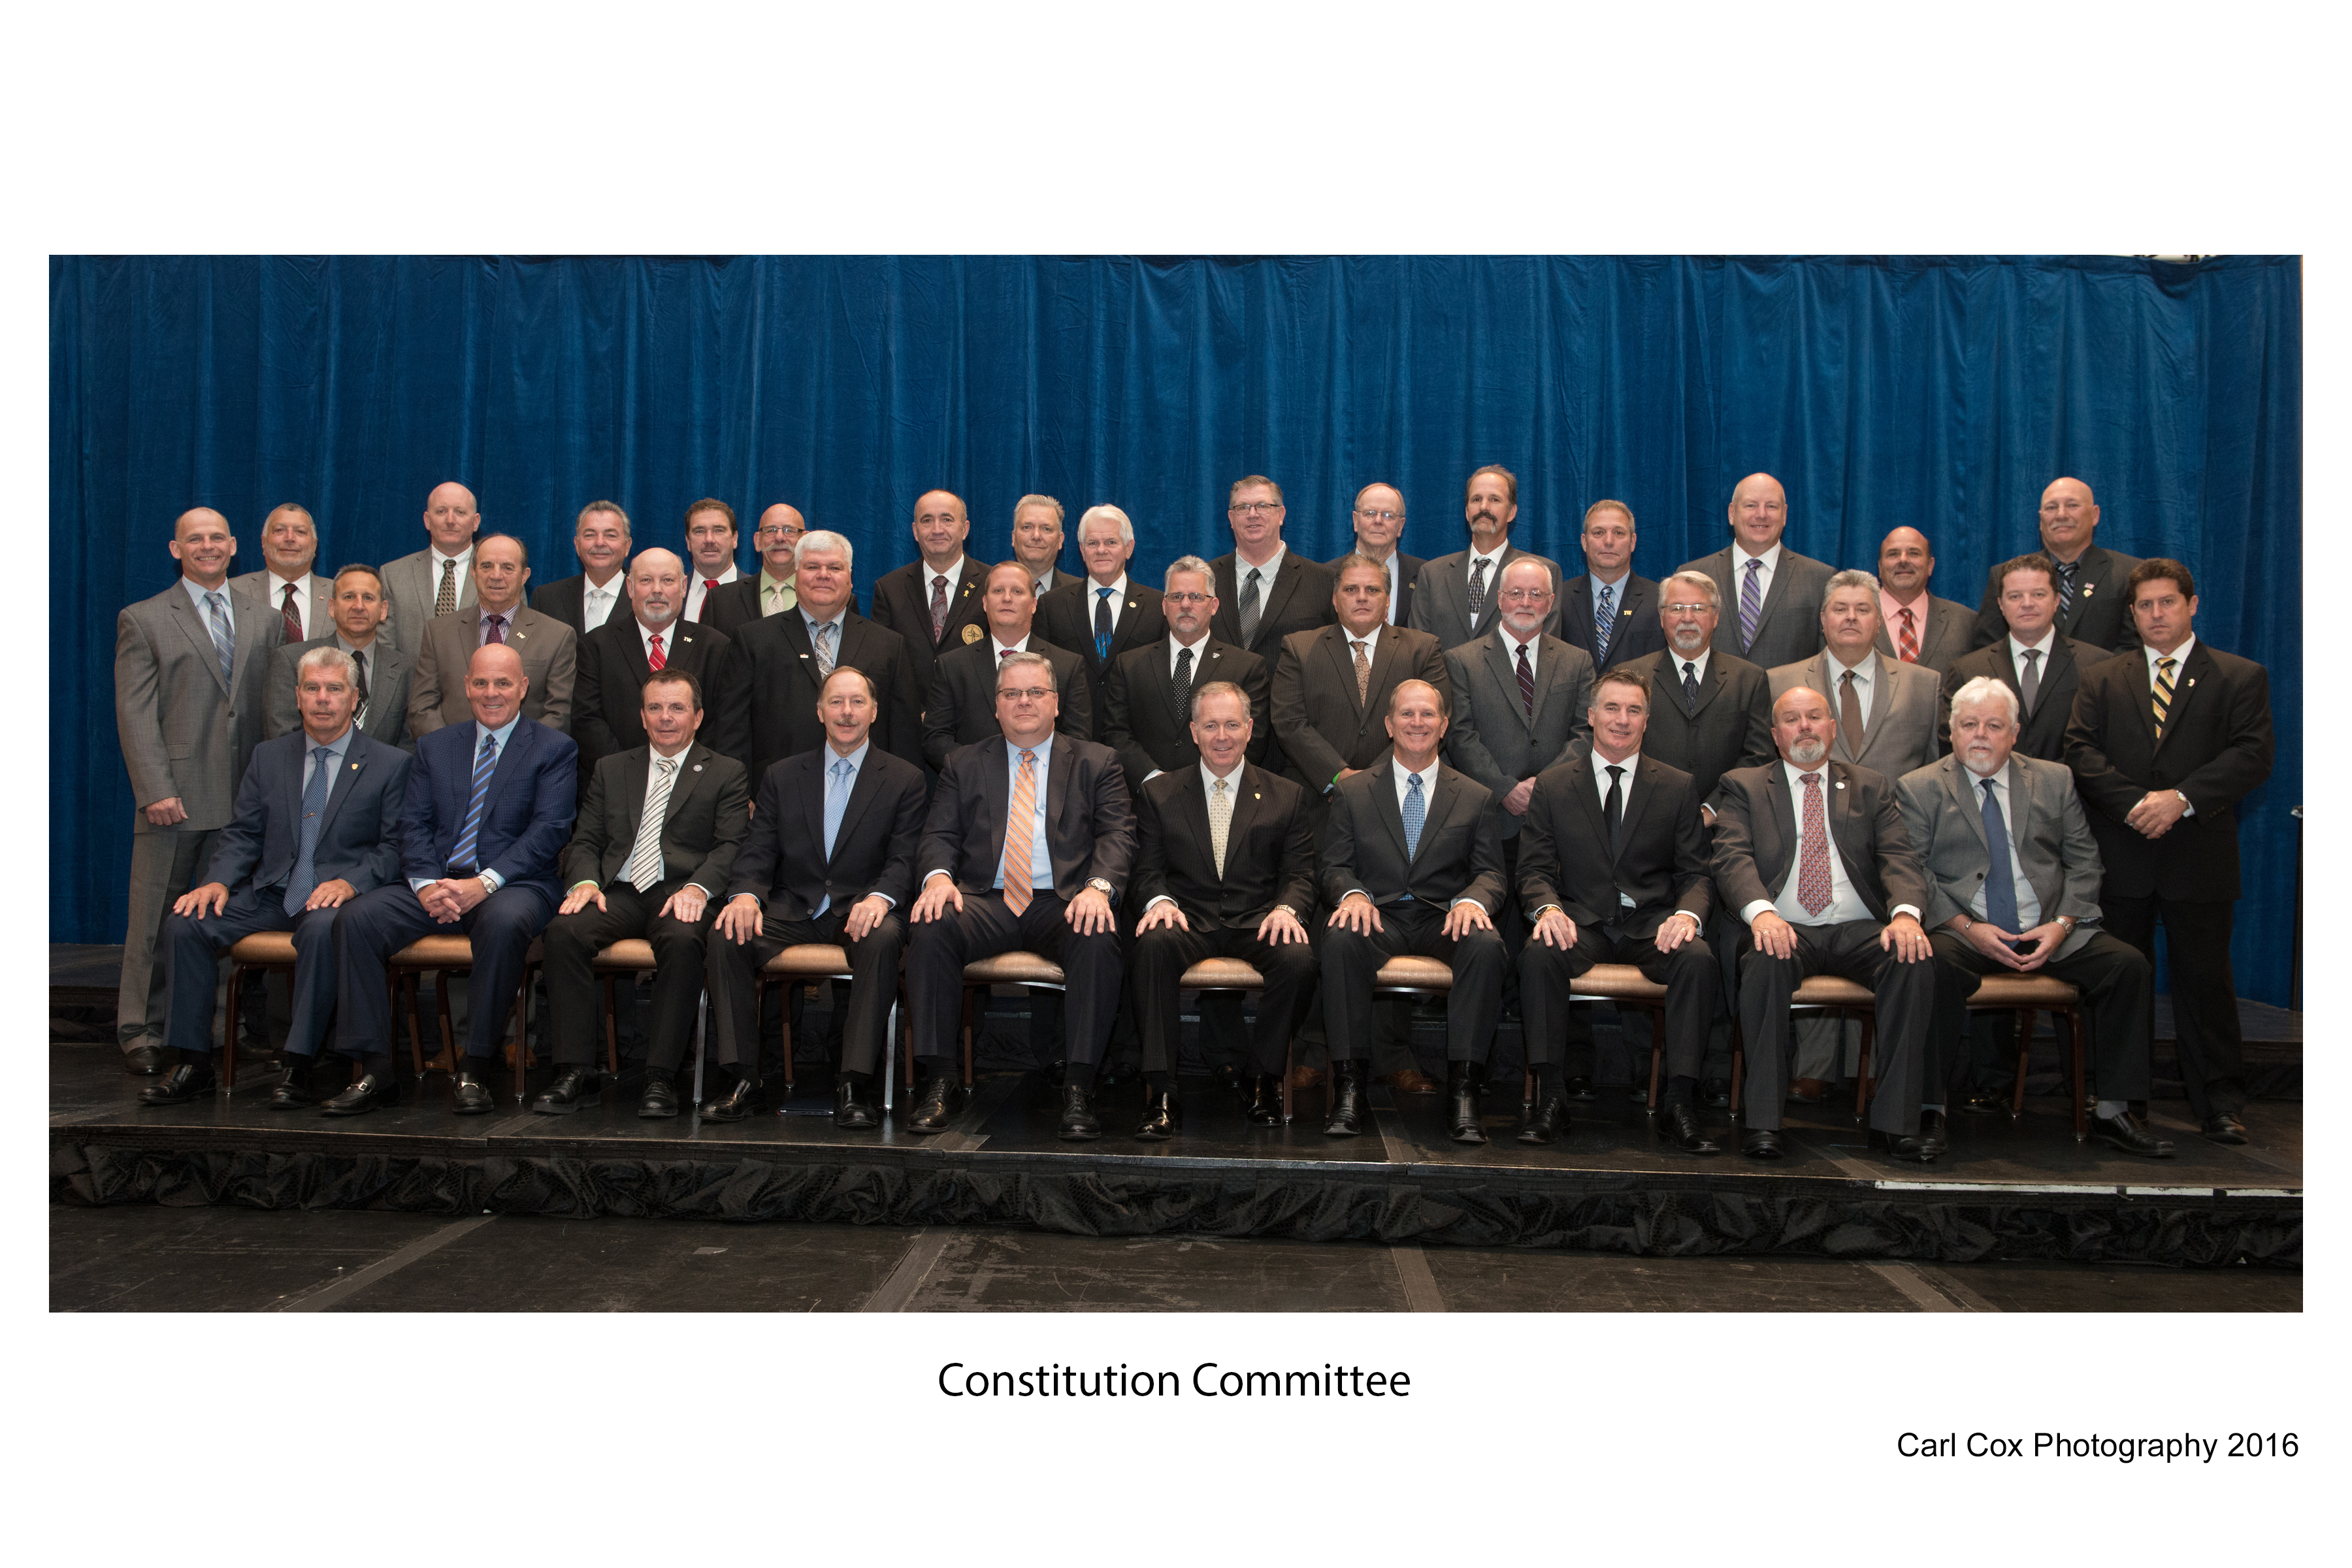 Constitution Committee